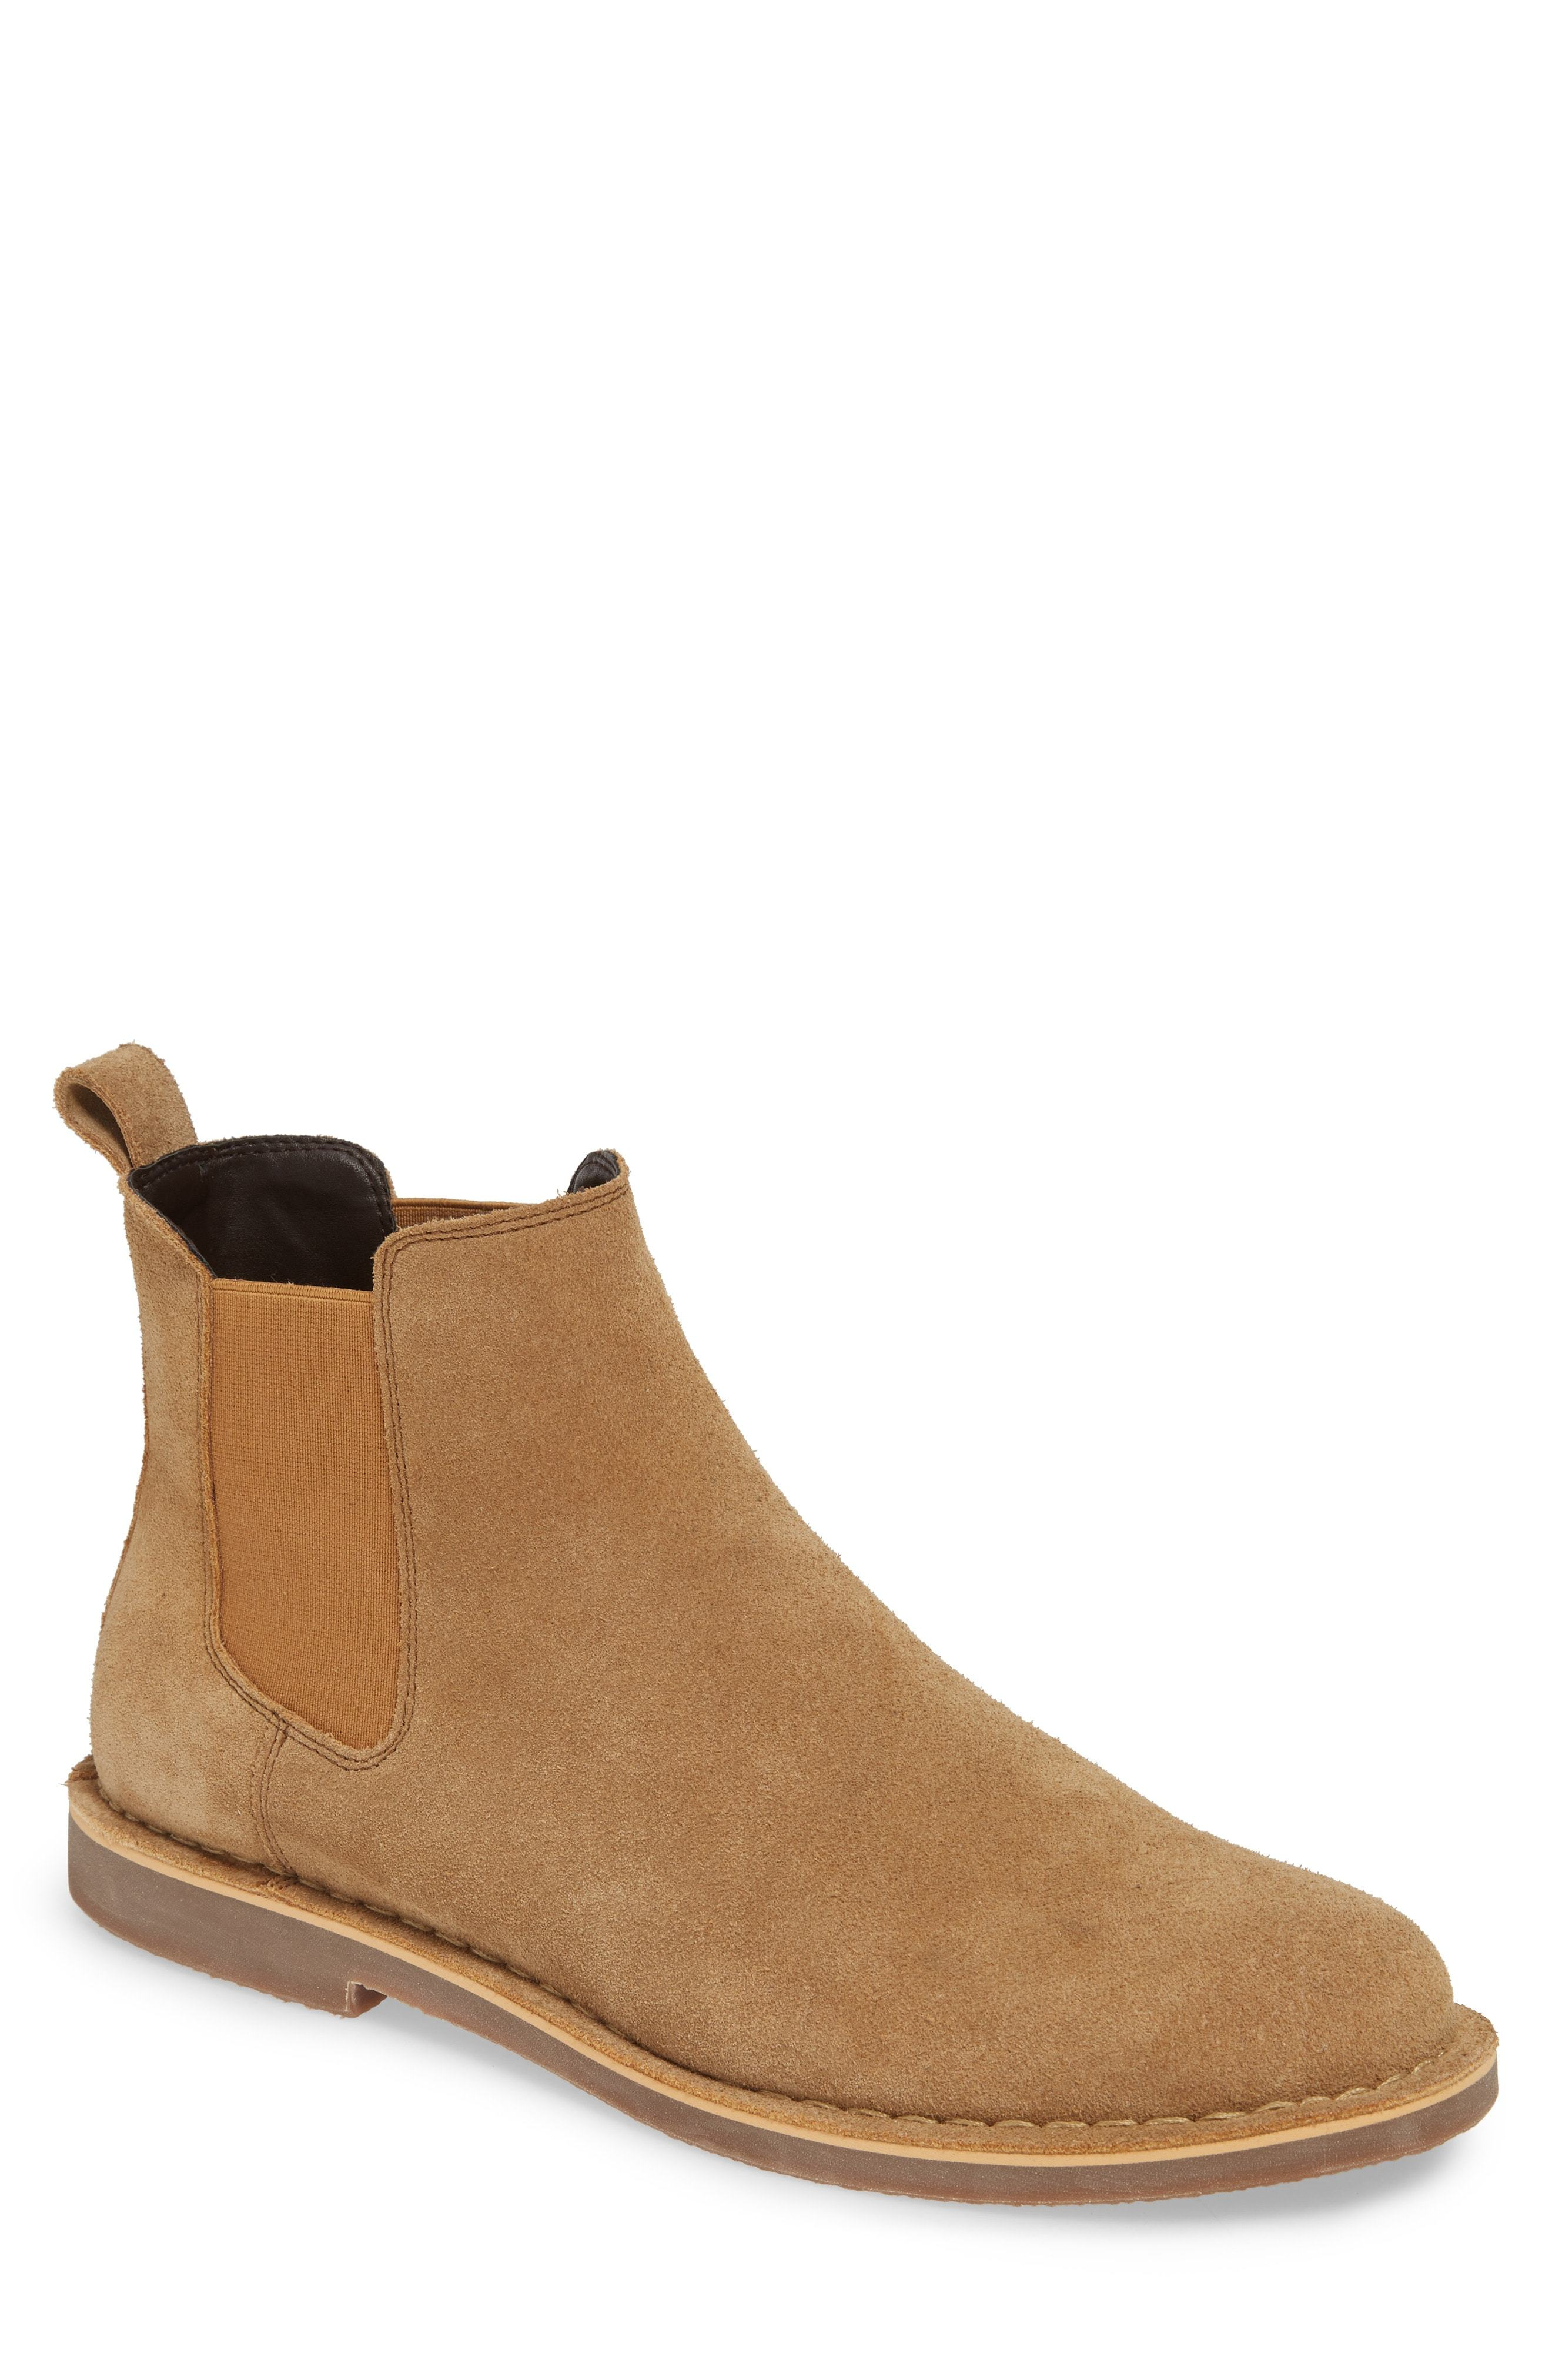 The Rail Payson Chelsea Boot, $39